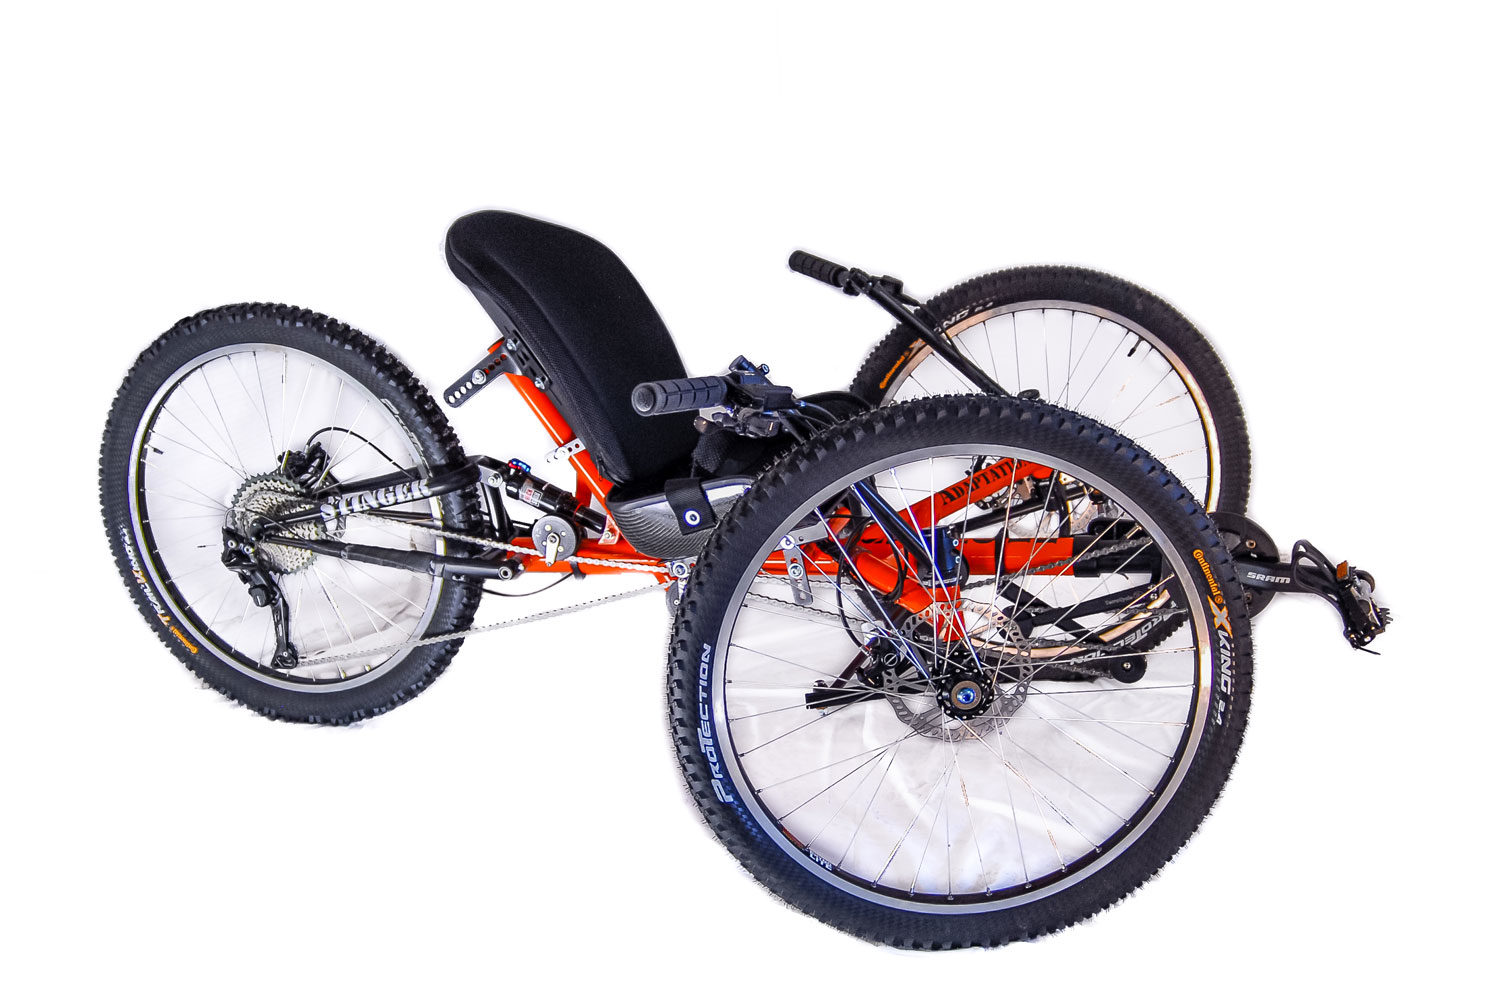 Reactive Adaptations Higher Ground Offroad Handcycle  sm